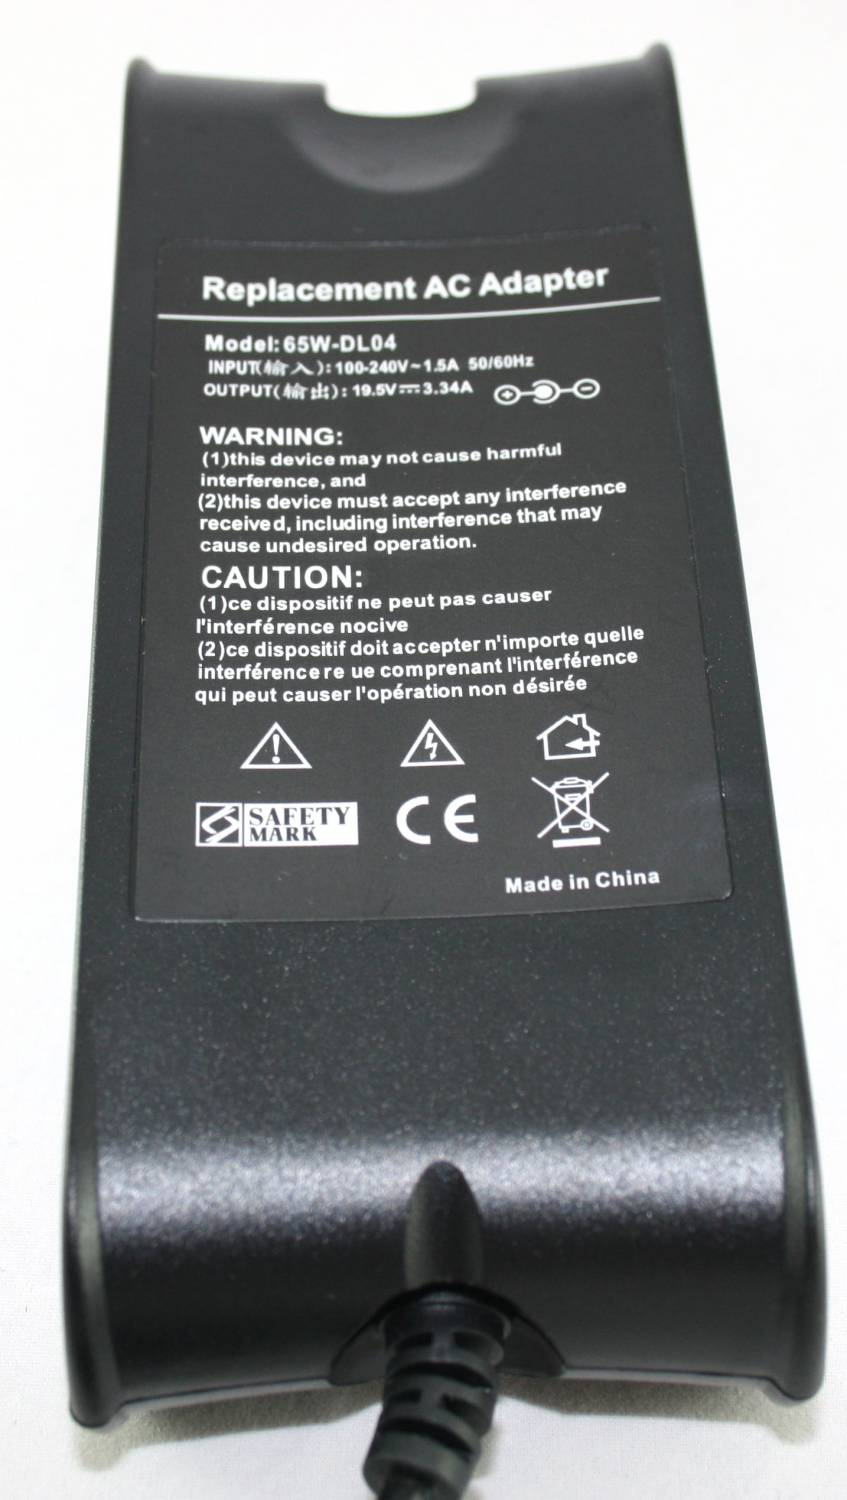 Dell adapter 19,5V 3.34A 7.5 x 5.0 mm middenpin / TA0405